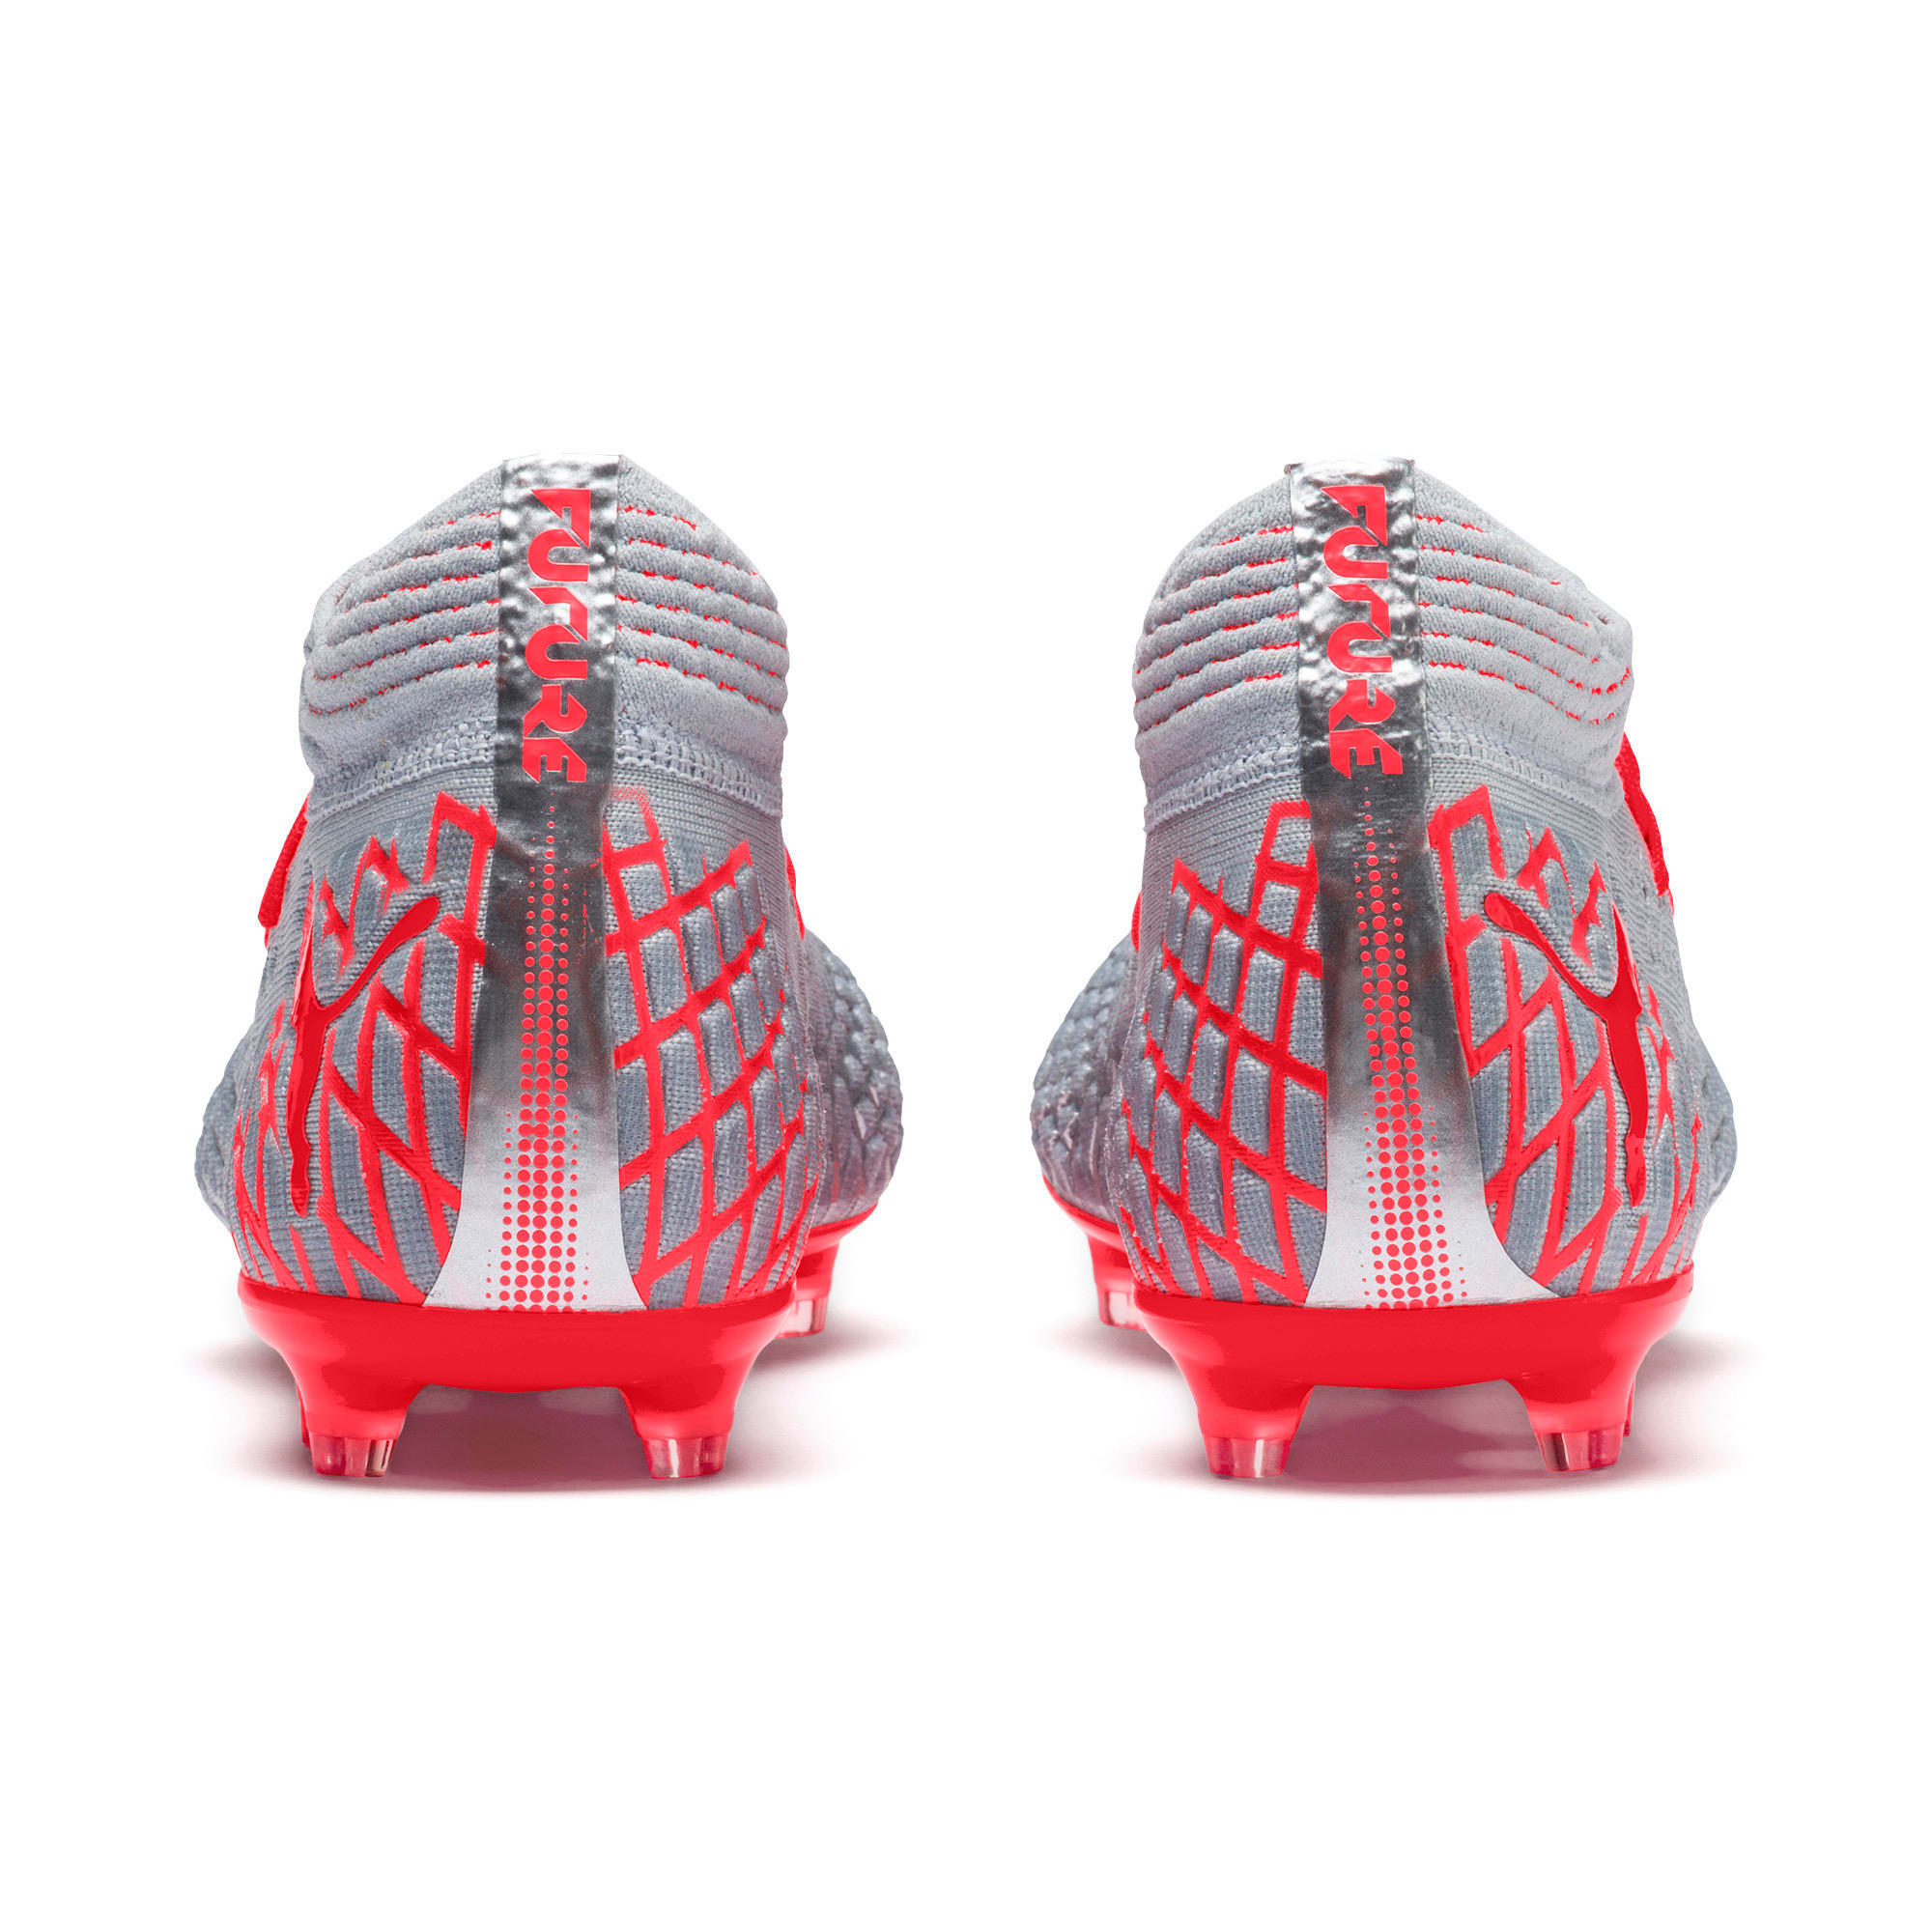 Thumbnail 4 of FUTURE 4.1 NETFIT FG/AG Men's Soccer Cleats, Blue-Nrgy Red-High Risk Red, medium